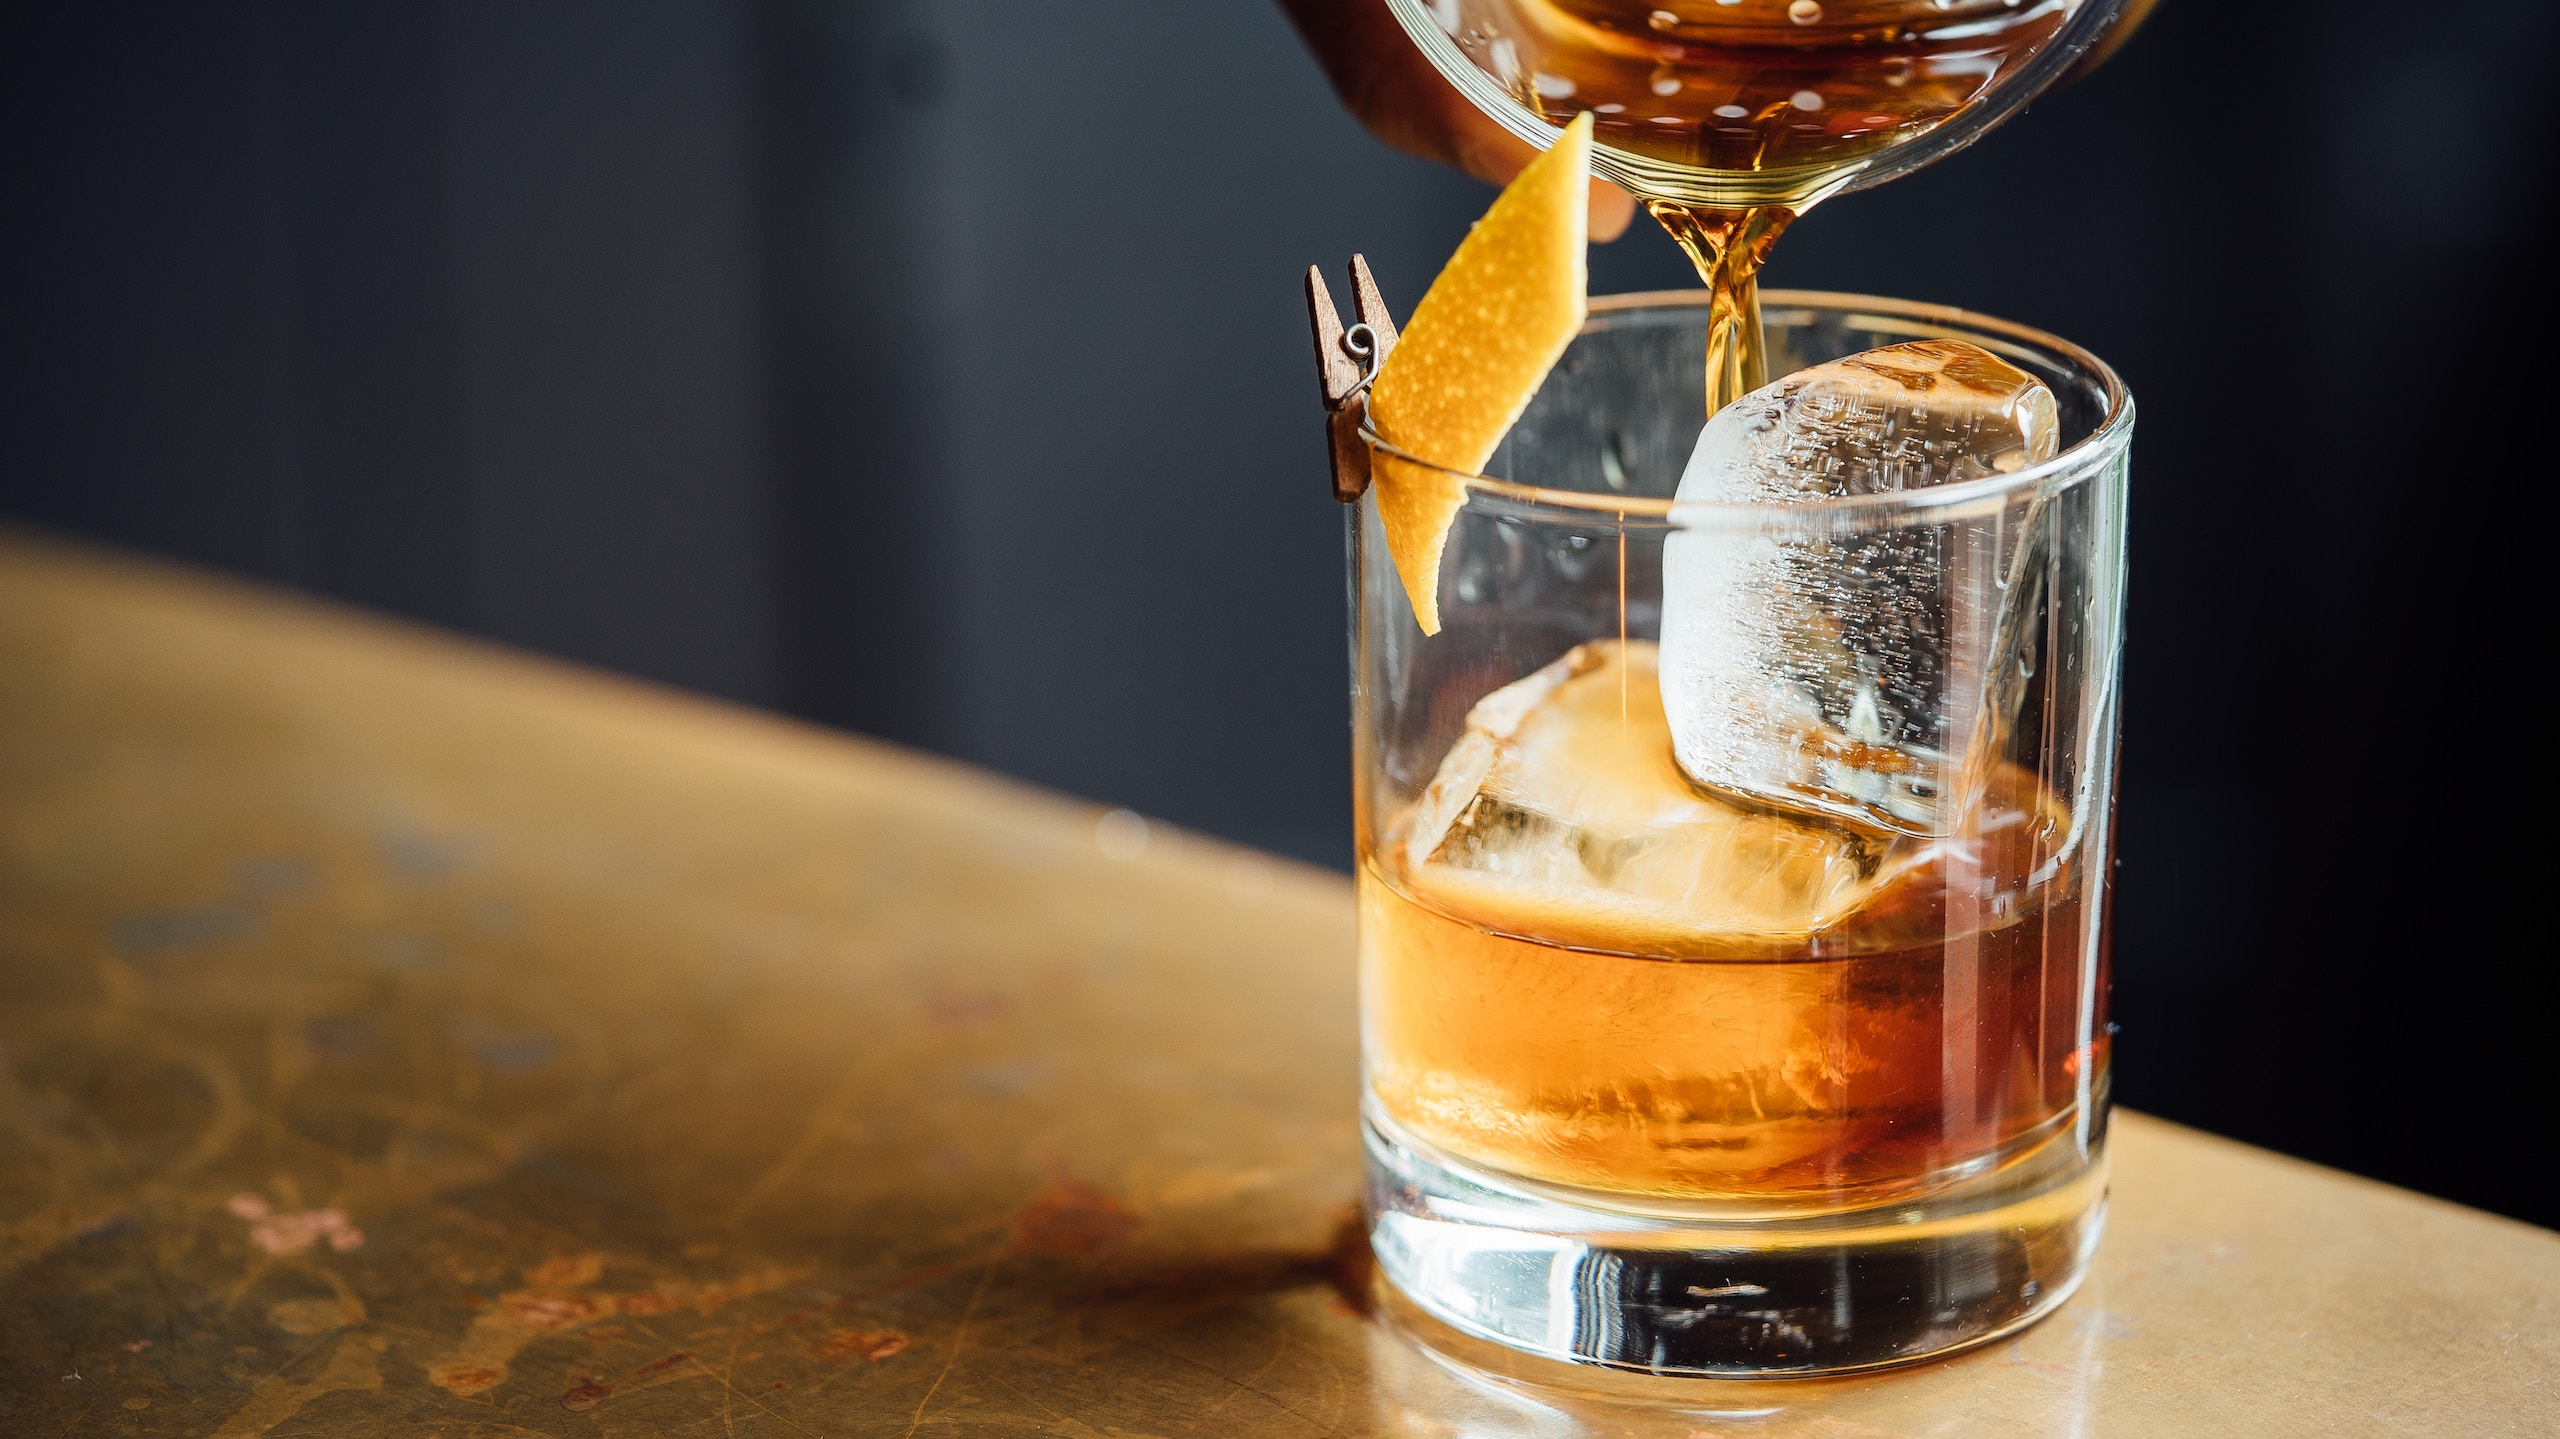 Inteligencia artificial crea whiskey